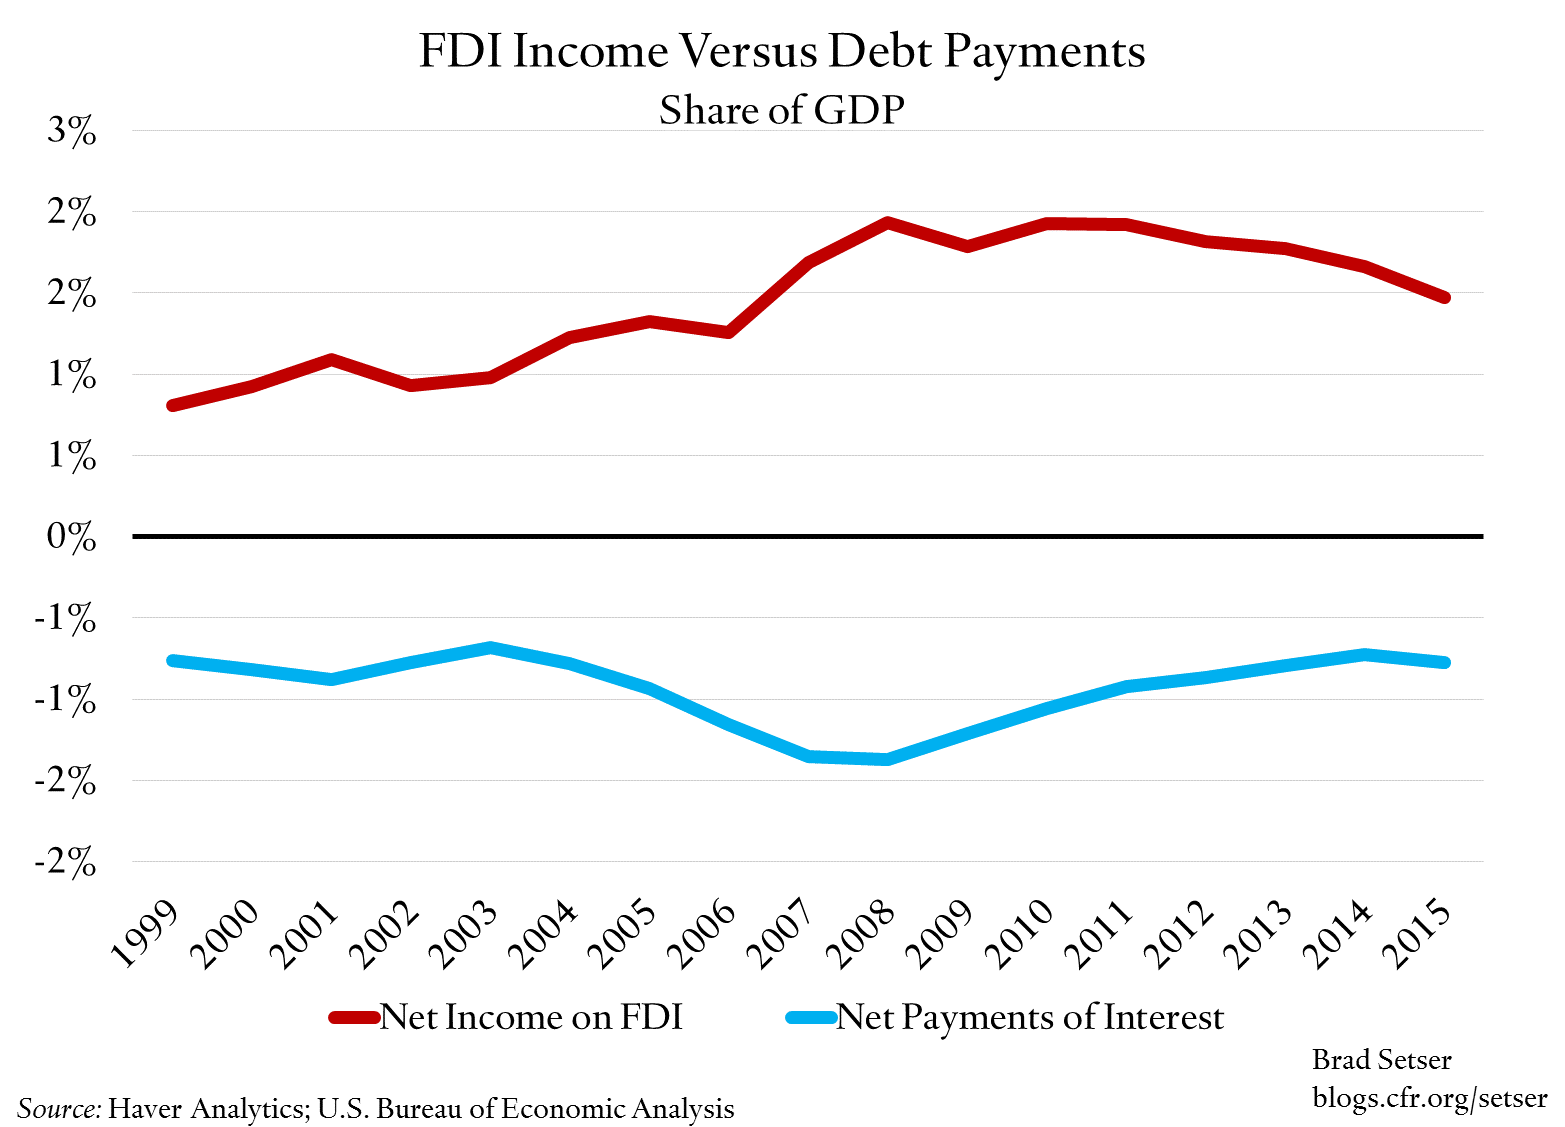 fdi-income-v-debt-payments-gdp-share